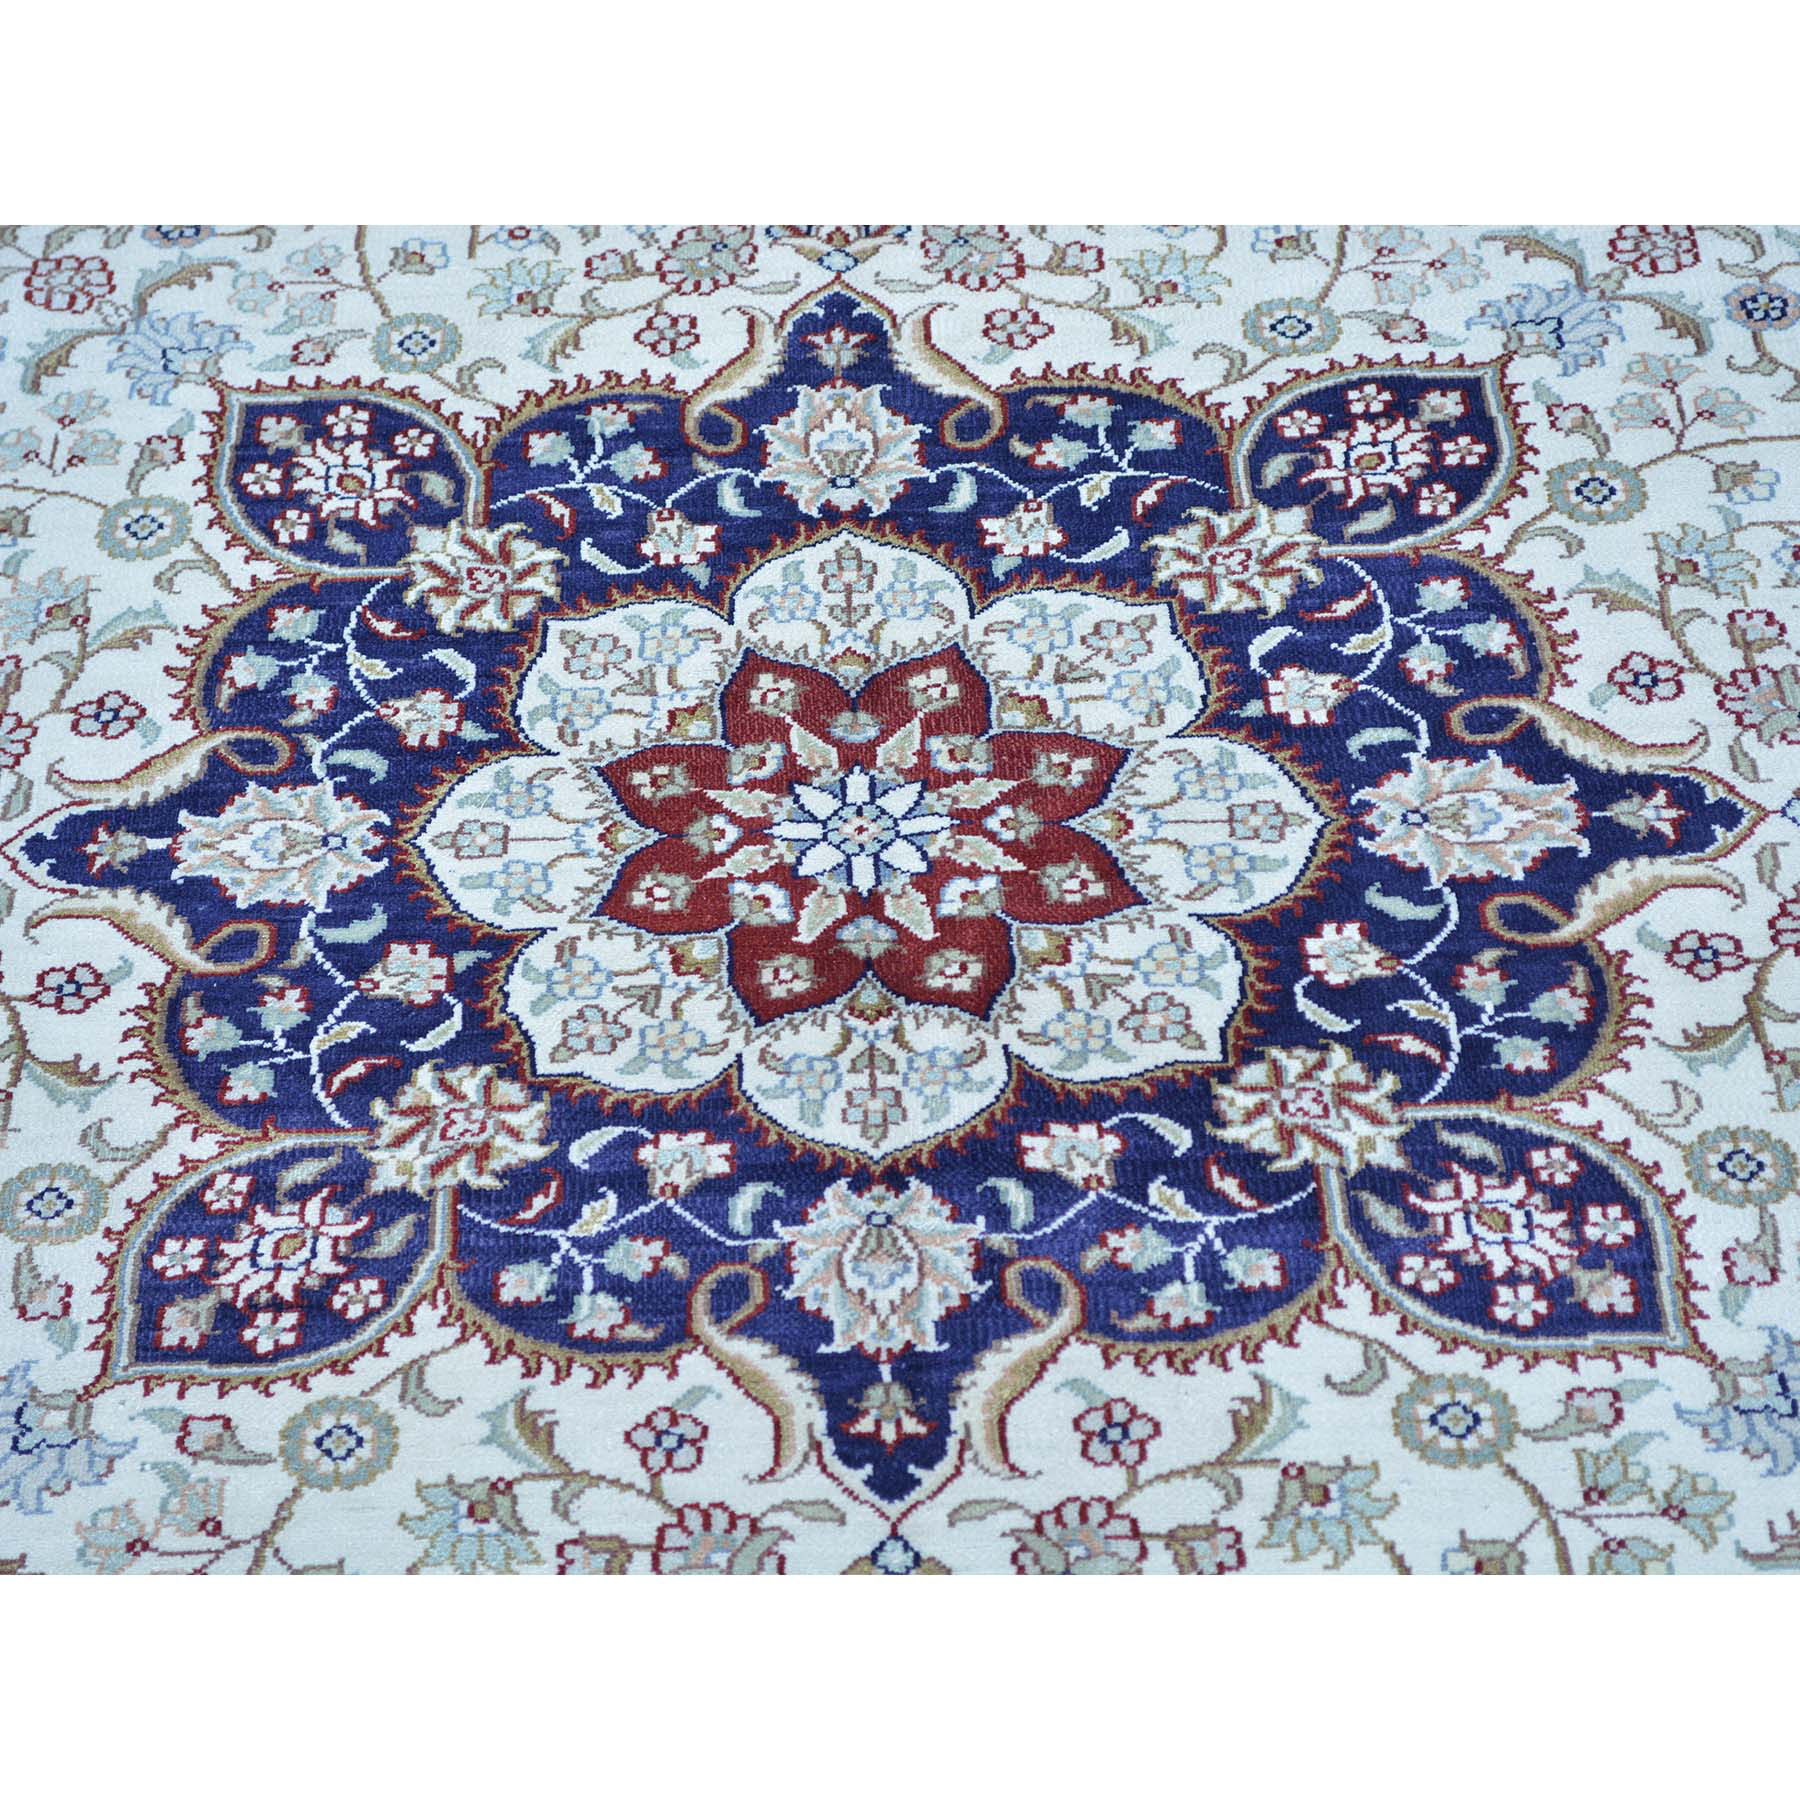 8-10 x12- Hand Knotted Pure Silk Kashan 400 KPSI Oriental Rug